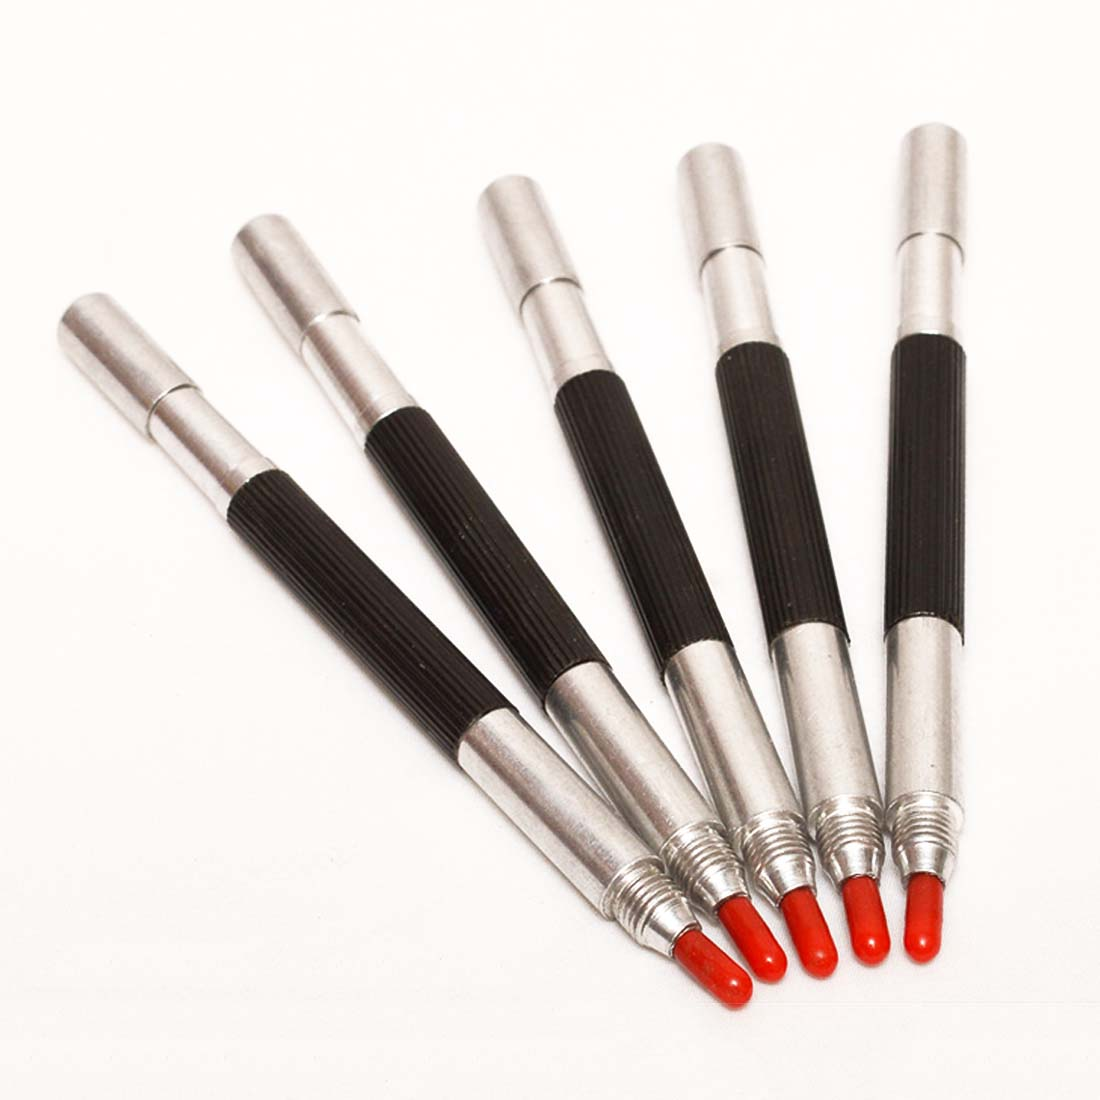 Glass Cutter Carbide Scriber Hard Metal Tile Cutting Machine Lettering Pen Engraver Glass Knife Scriber Cutting Tool